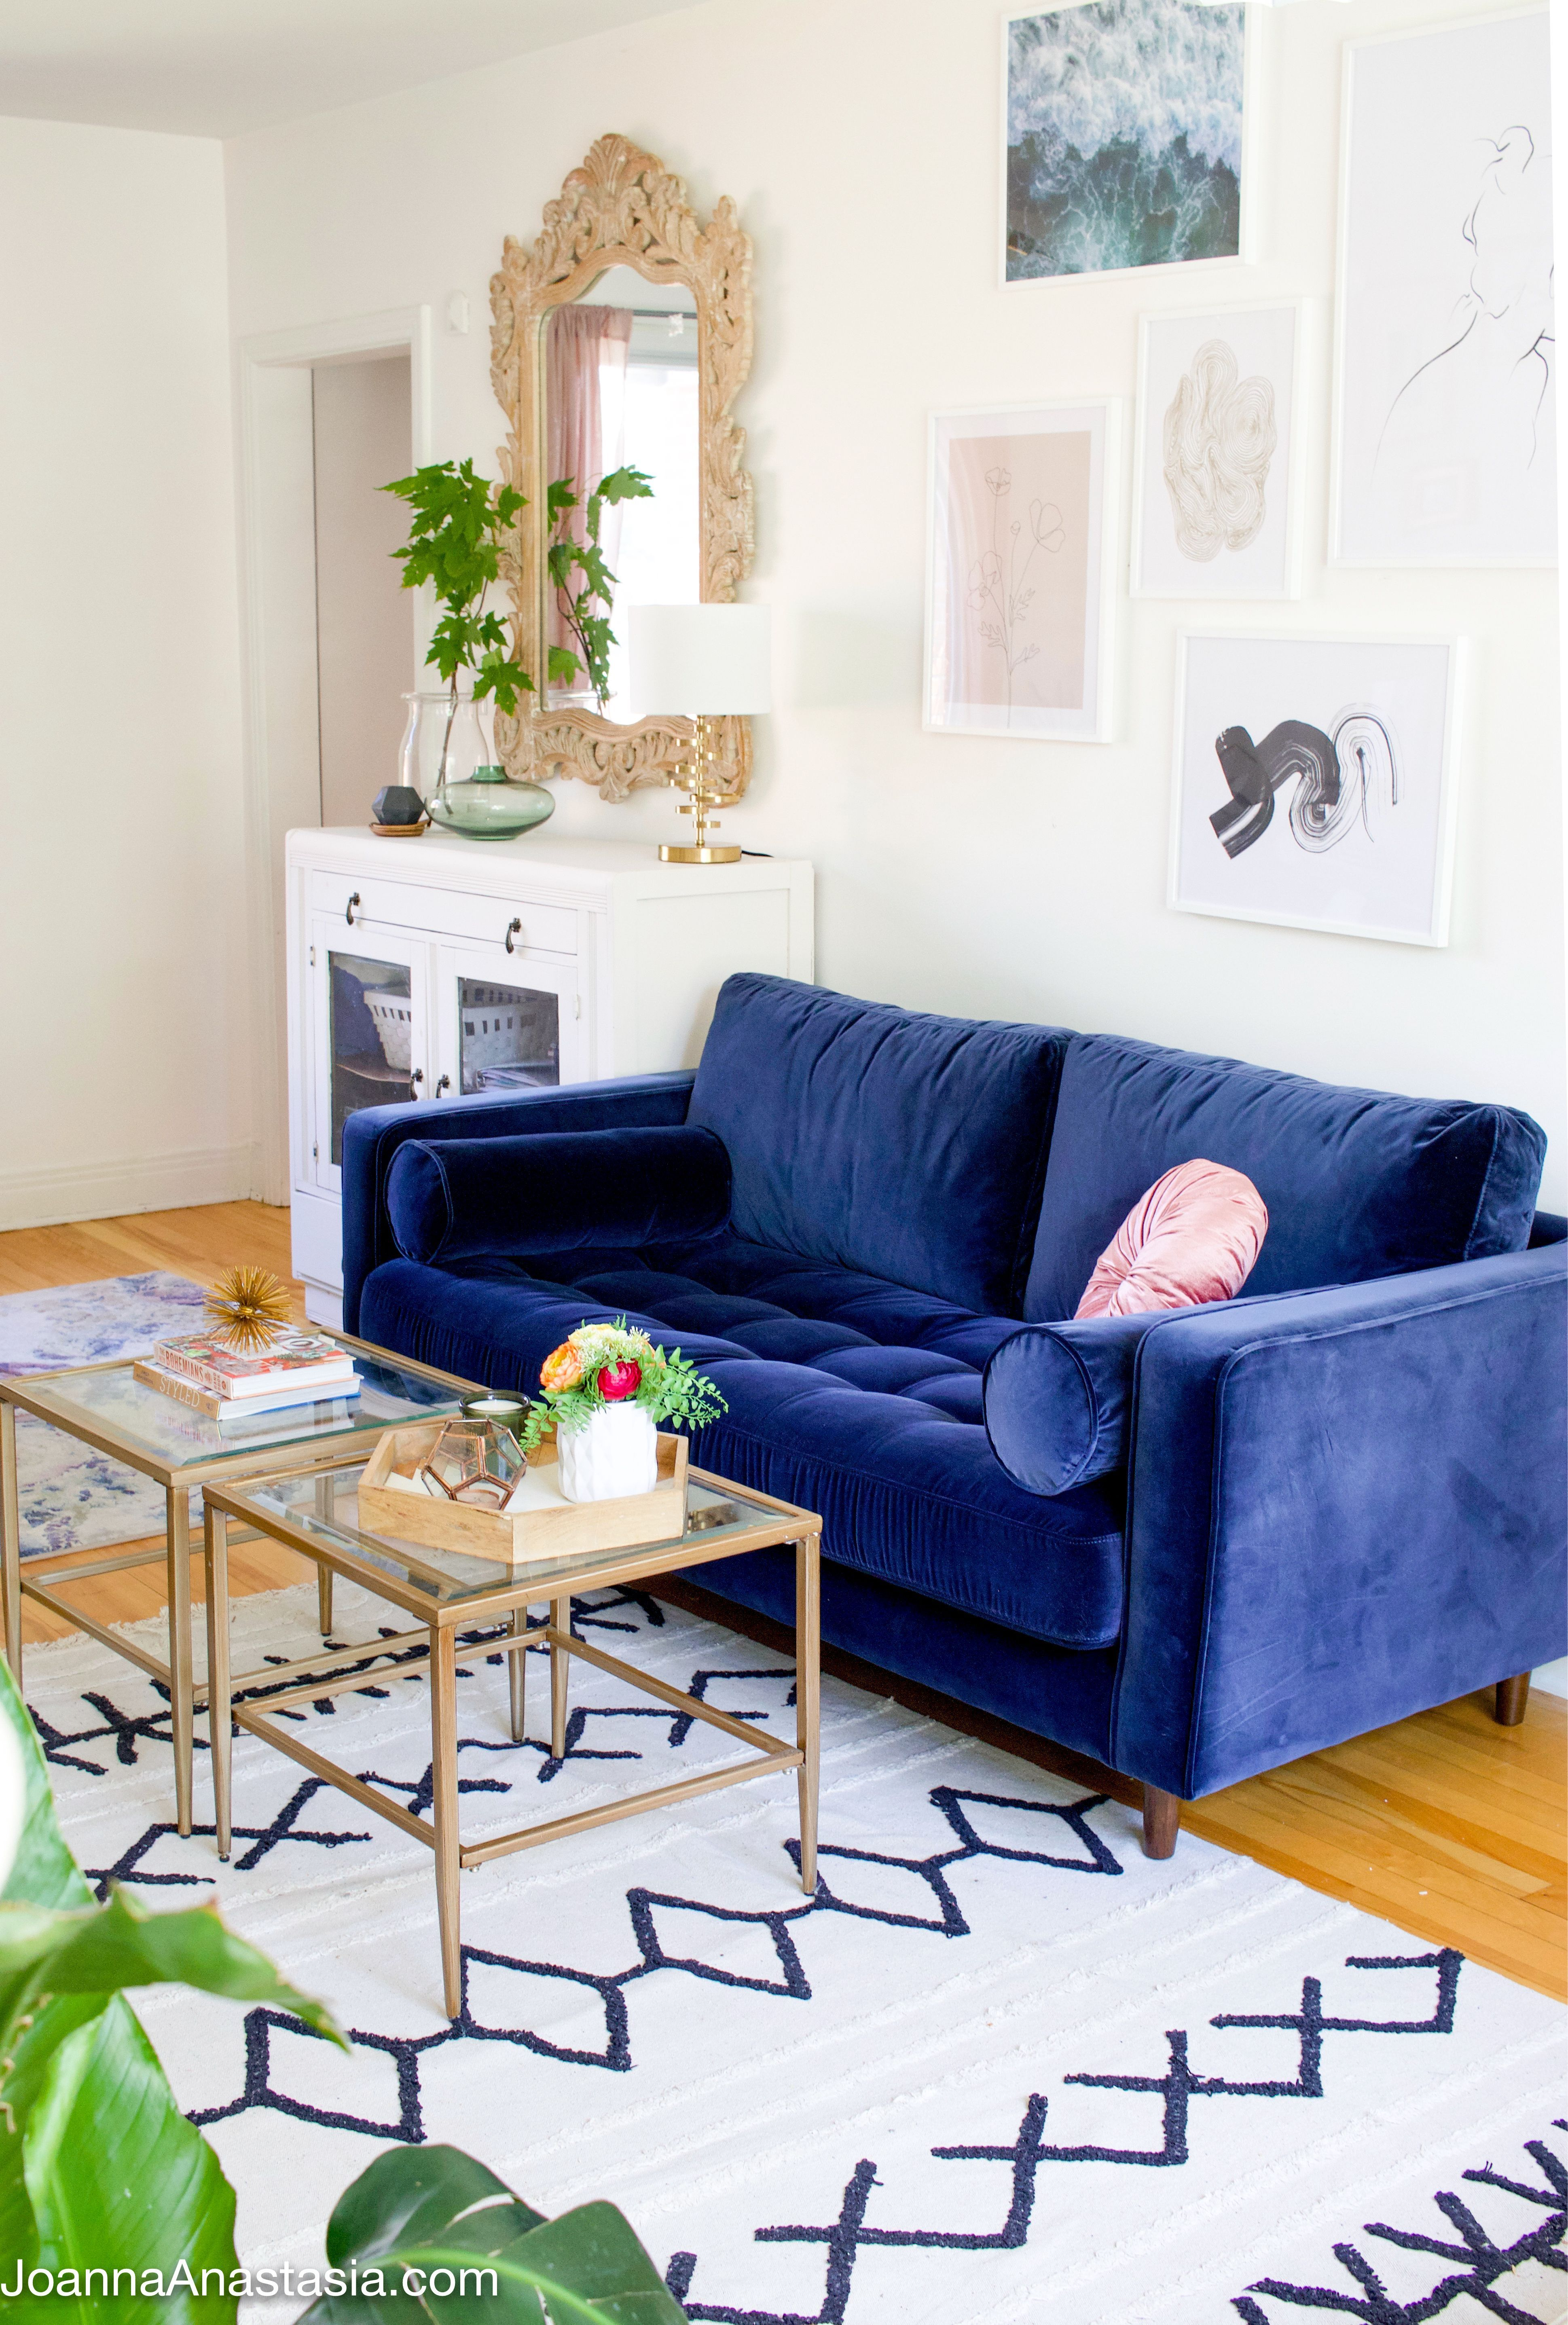 Check Out This Comfortable And Cozy Sitting Room With No Tv The Type Of A Space Where We Could Catc Eclectic Living Room Living Room Reveal Living Room Decor